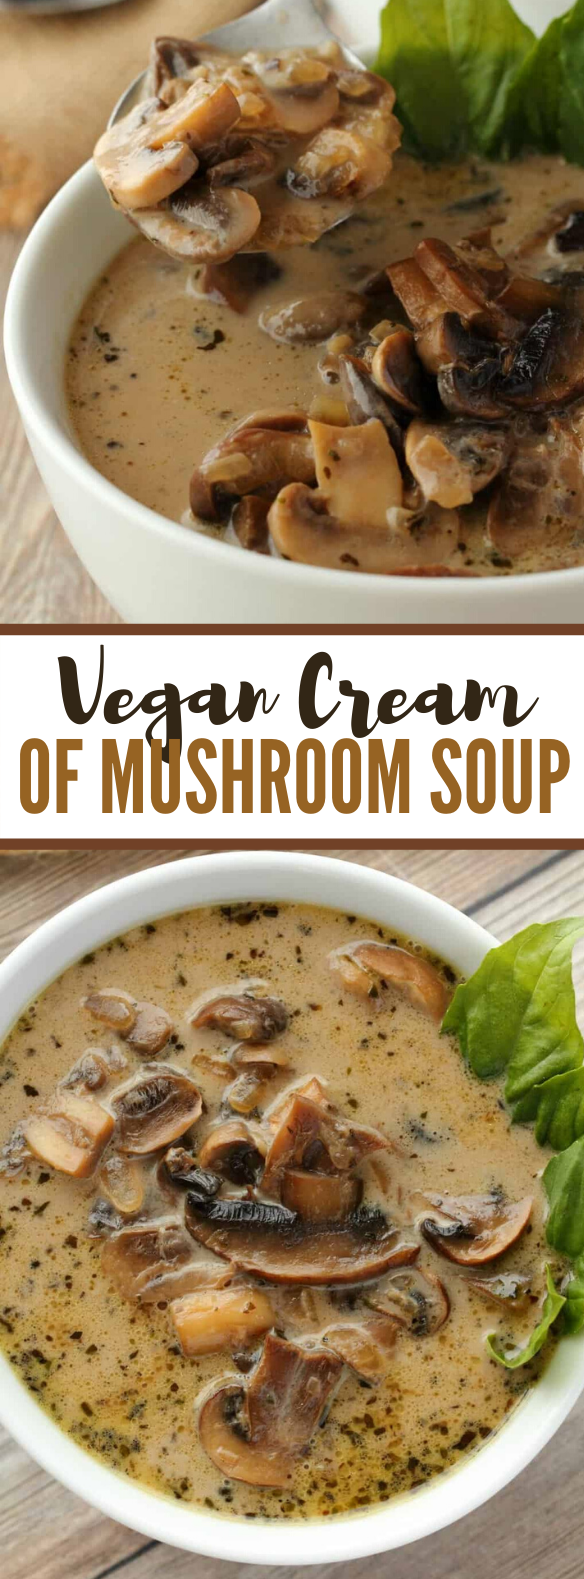 Vegan Cream Of Mushroom Soup #vegetarian #lunch